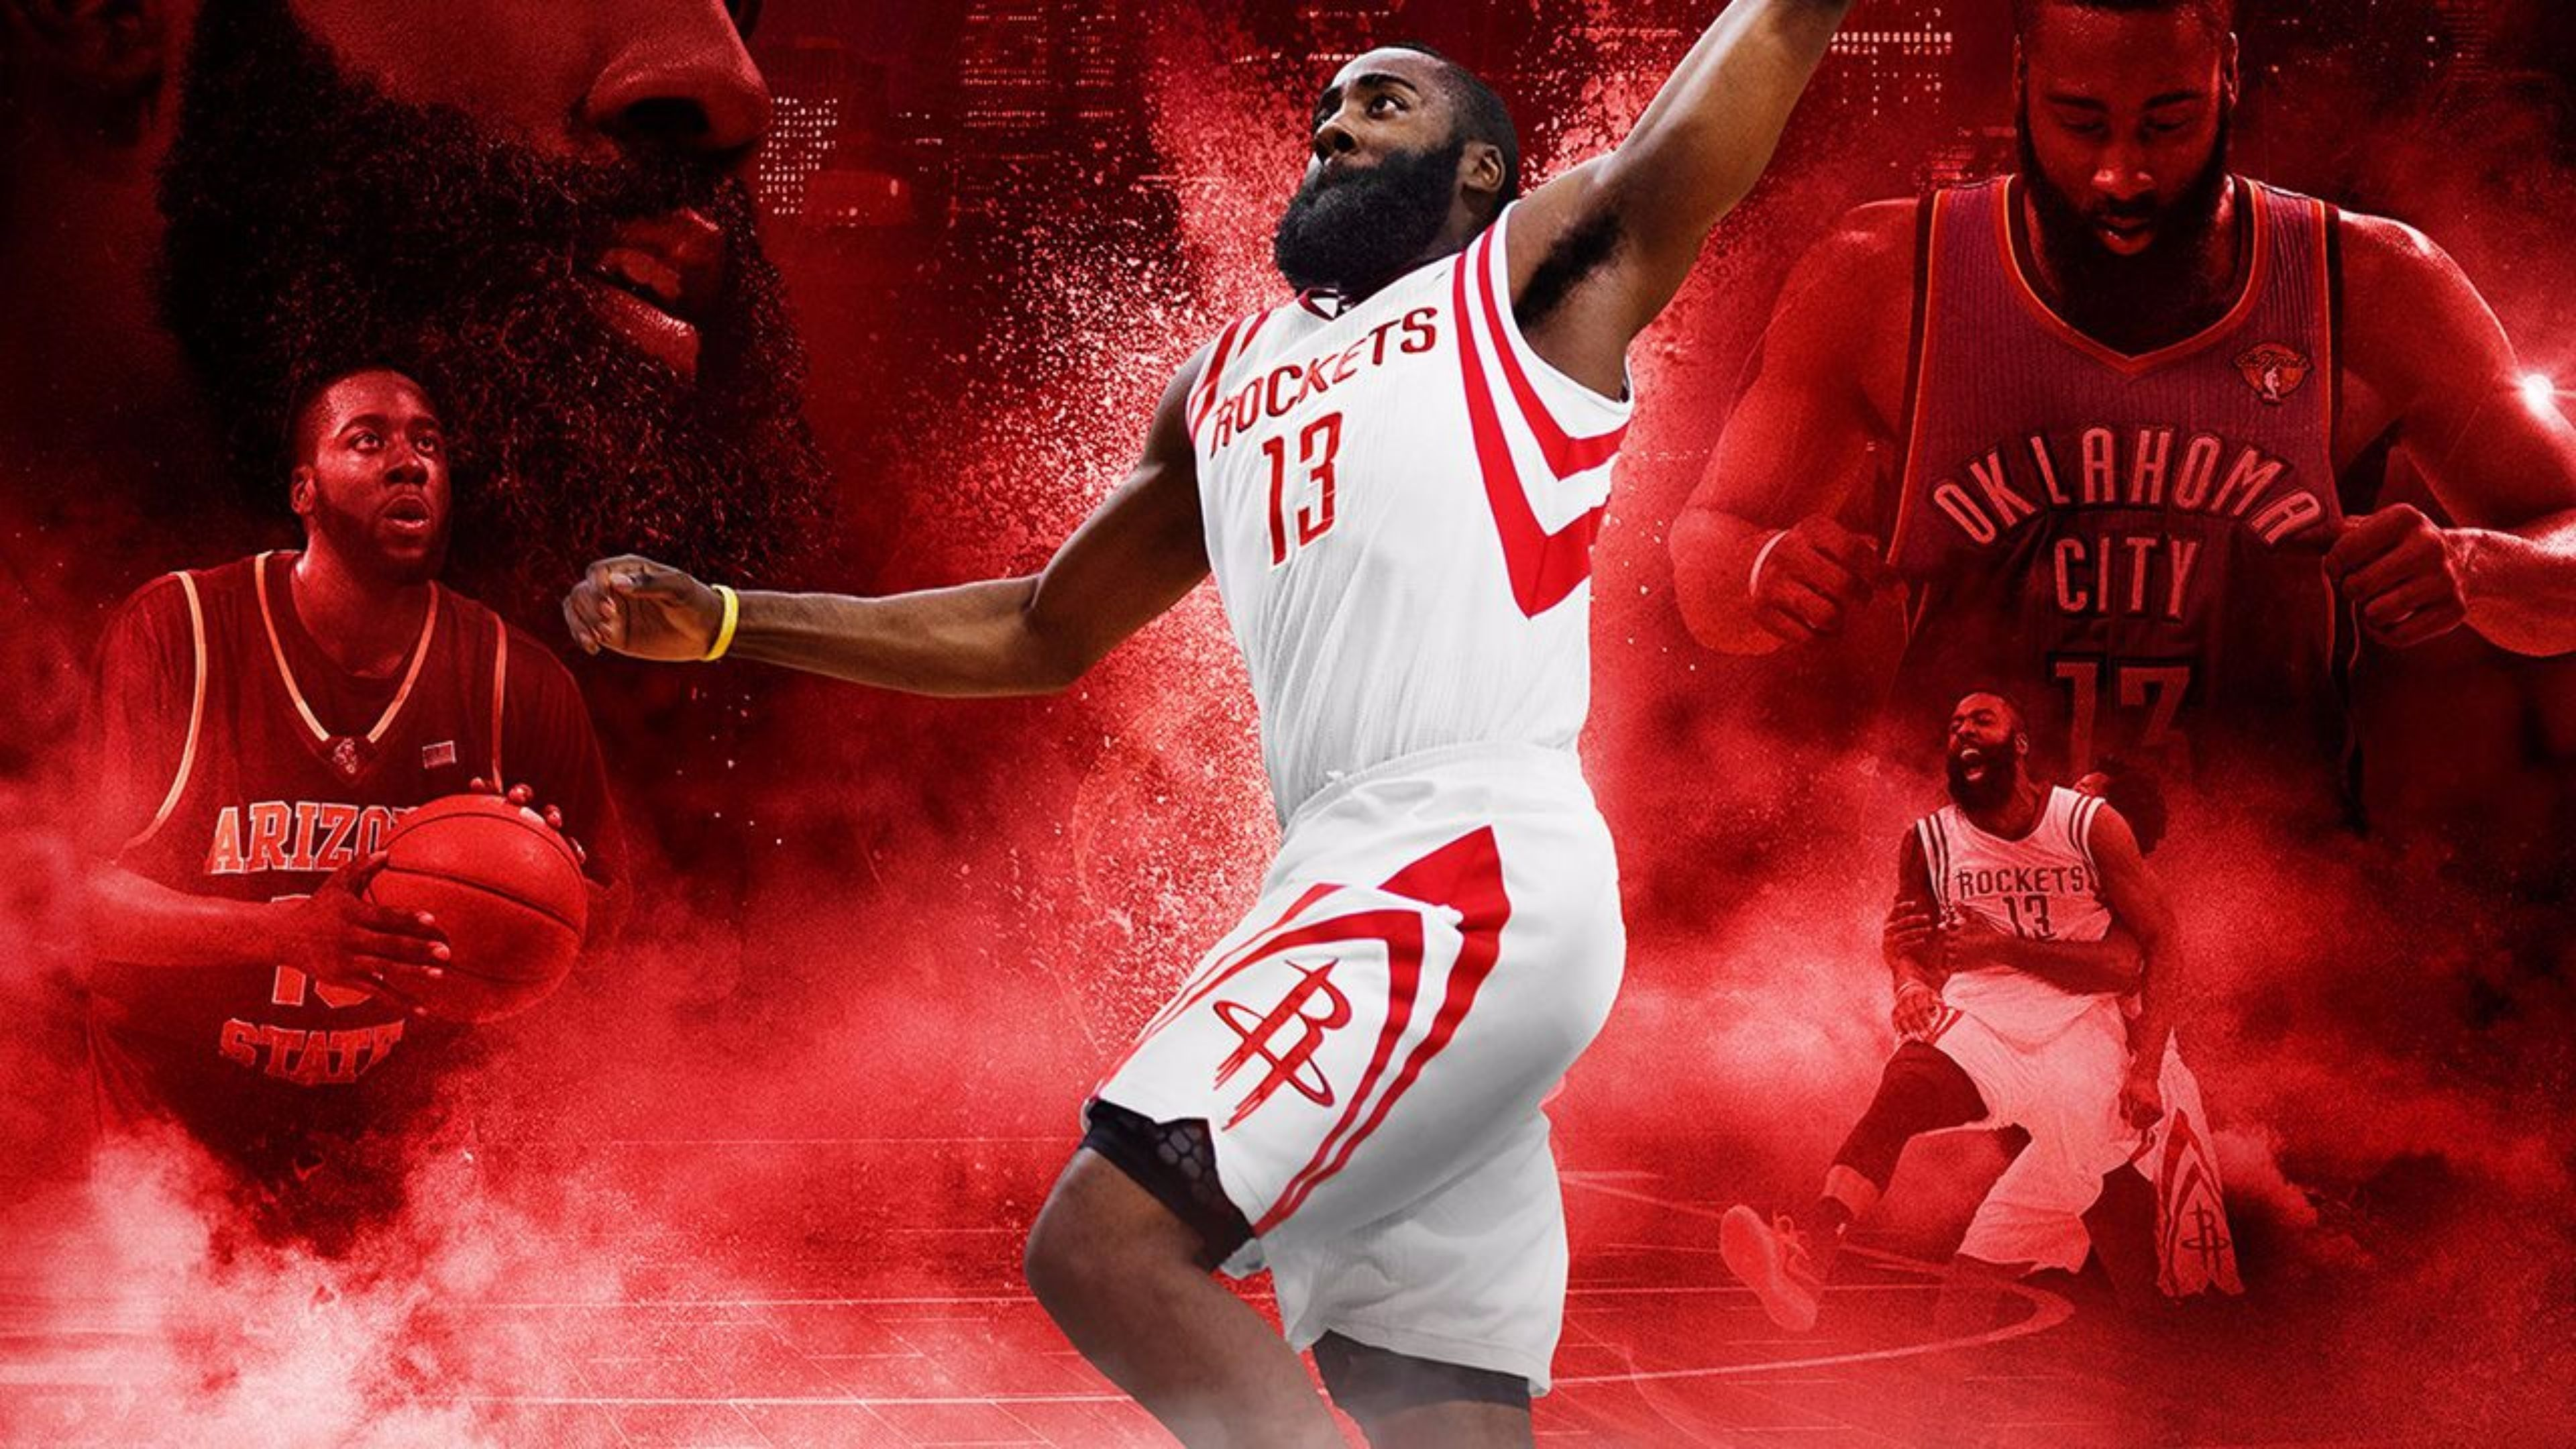 James Harden Full Hd Background 3840x2160 James Harden James Wallpaper Backgrounds